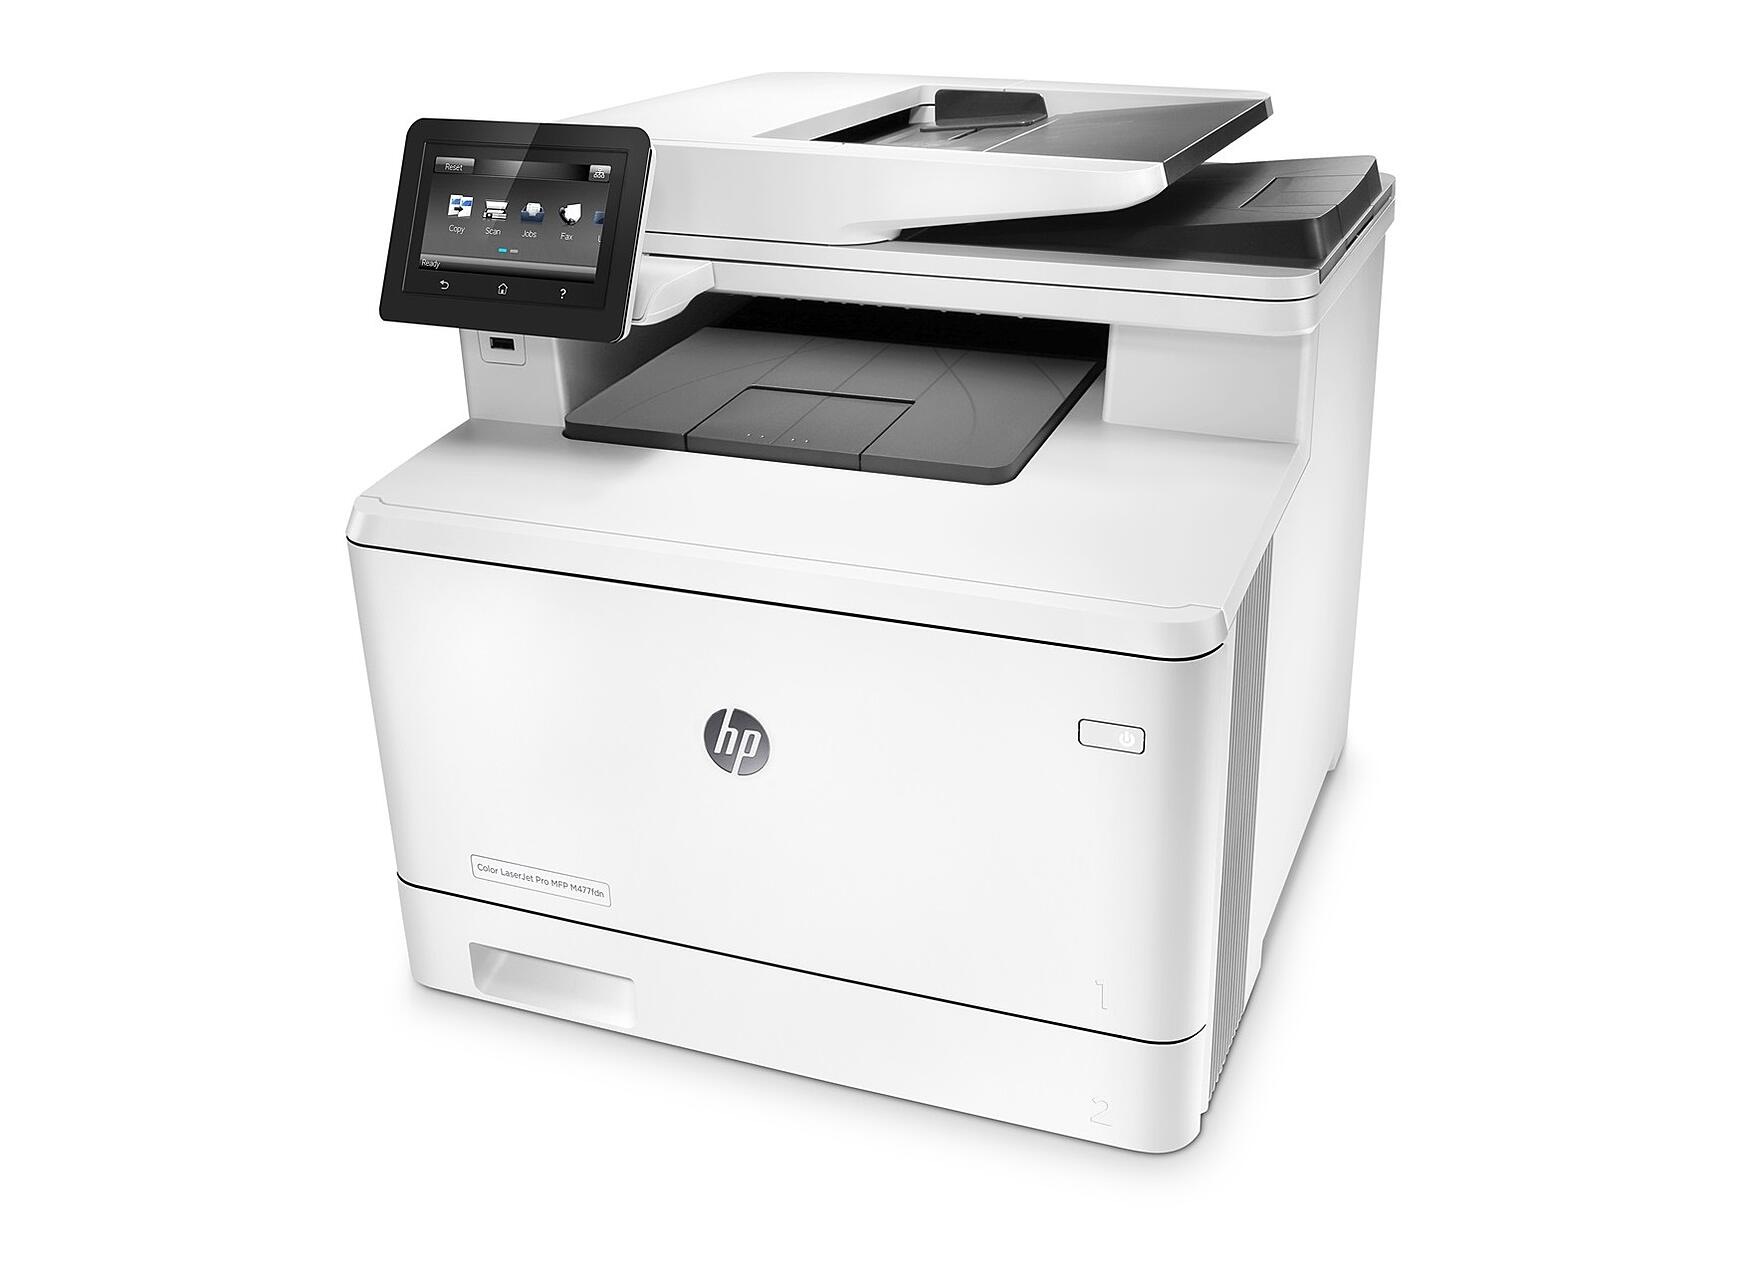 HP Color LaserJet Pro M477fdn Multifunction Printer with Fax-1